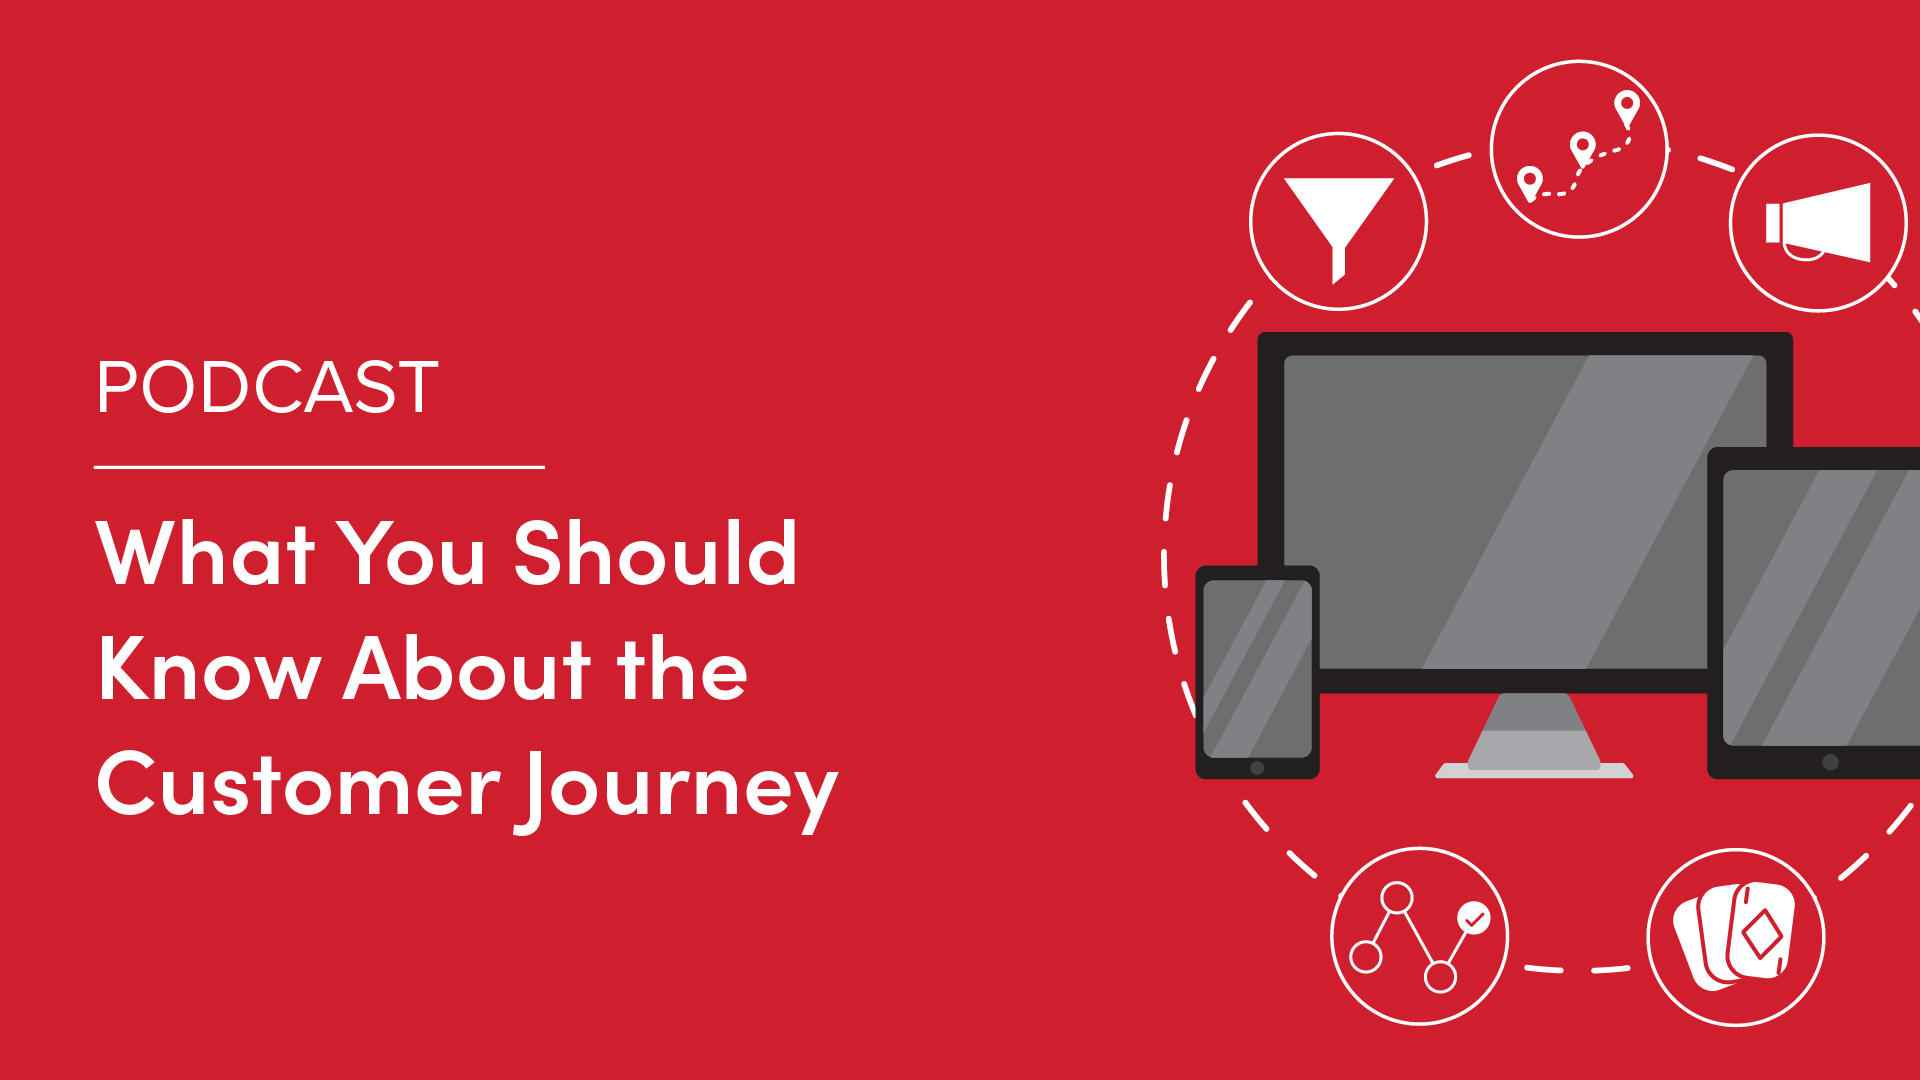 Podcast: What You Should Know About the Customer Journey